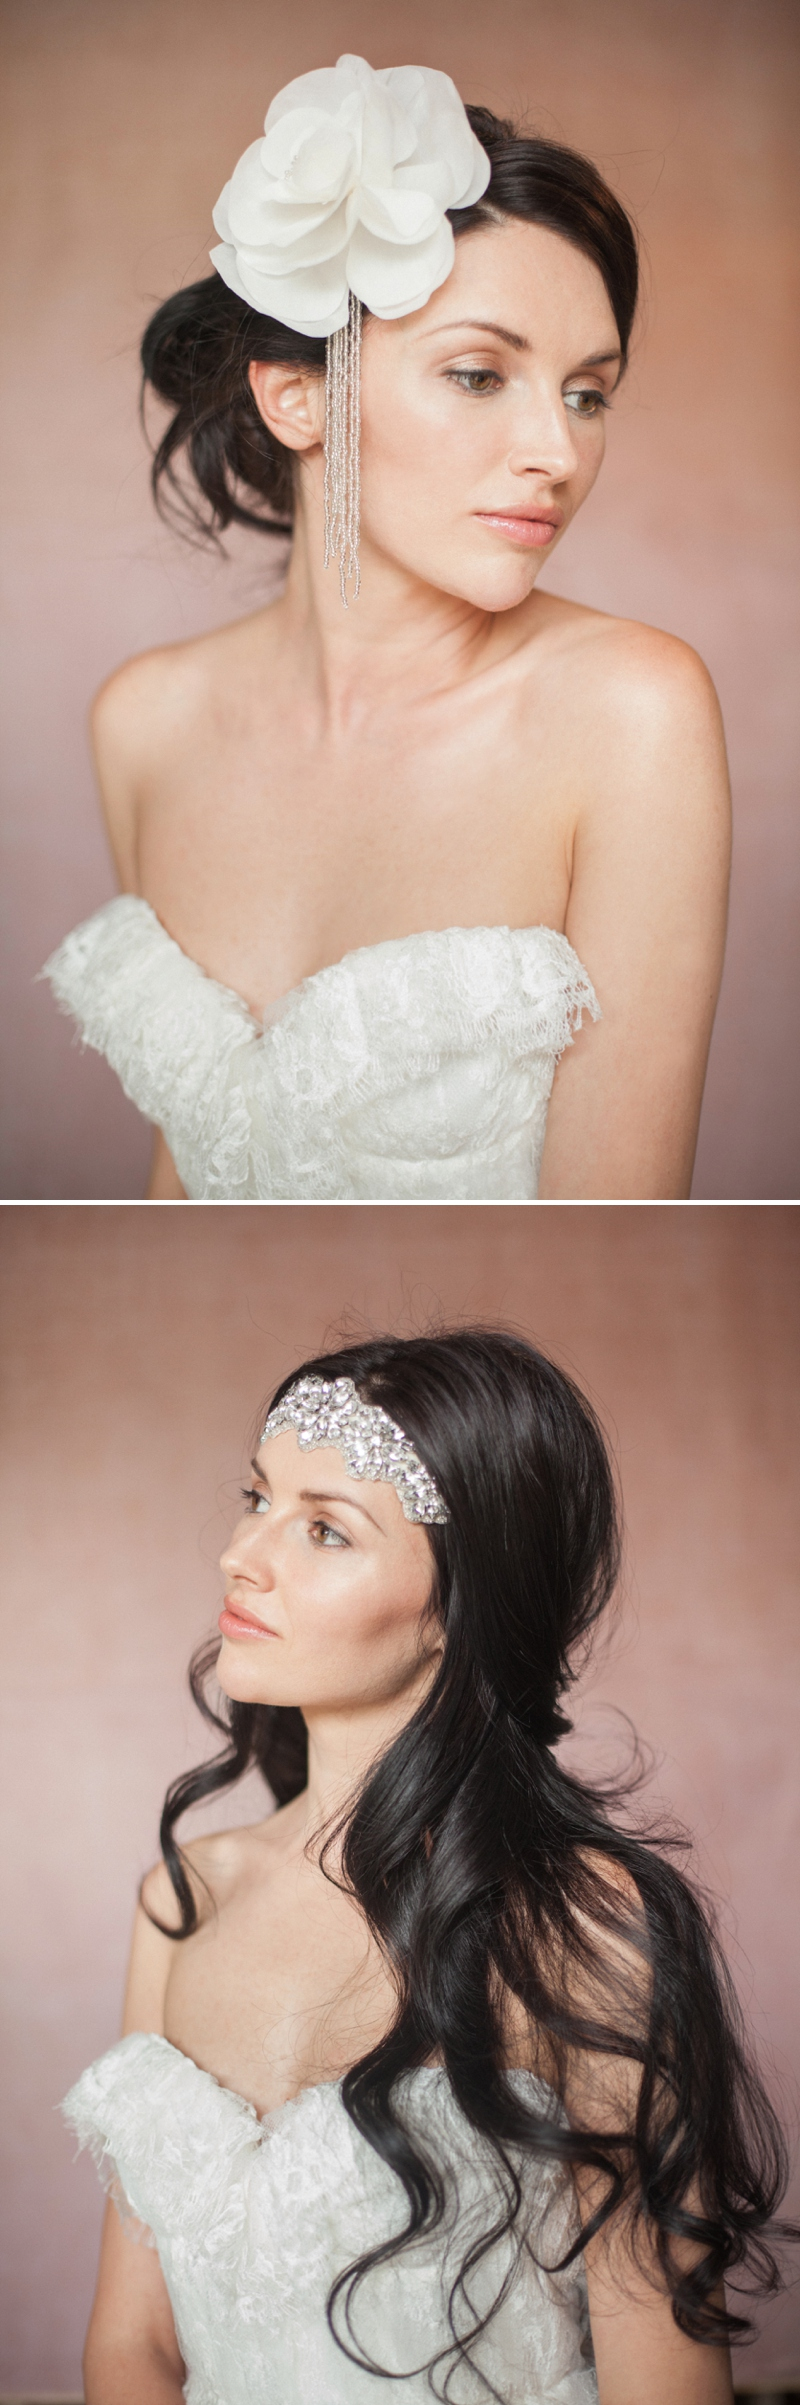 Britten 2014 Liberte Collection vintage inspired bridal wedding accessories headpieces 0153 Timeless And Effortlessly Classic Heirlooms.